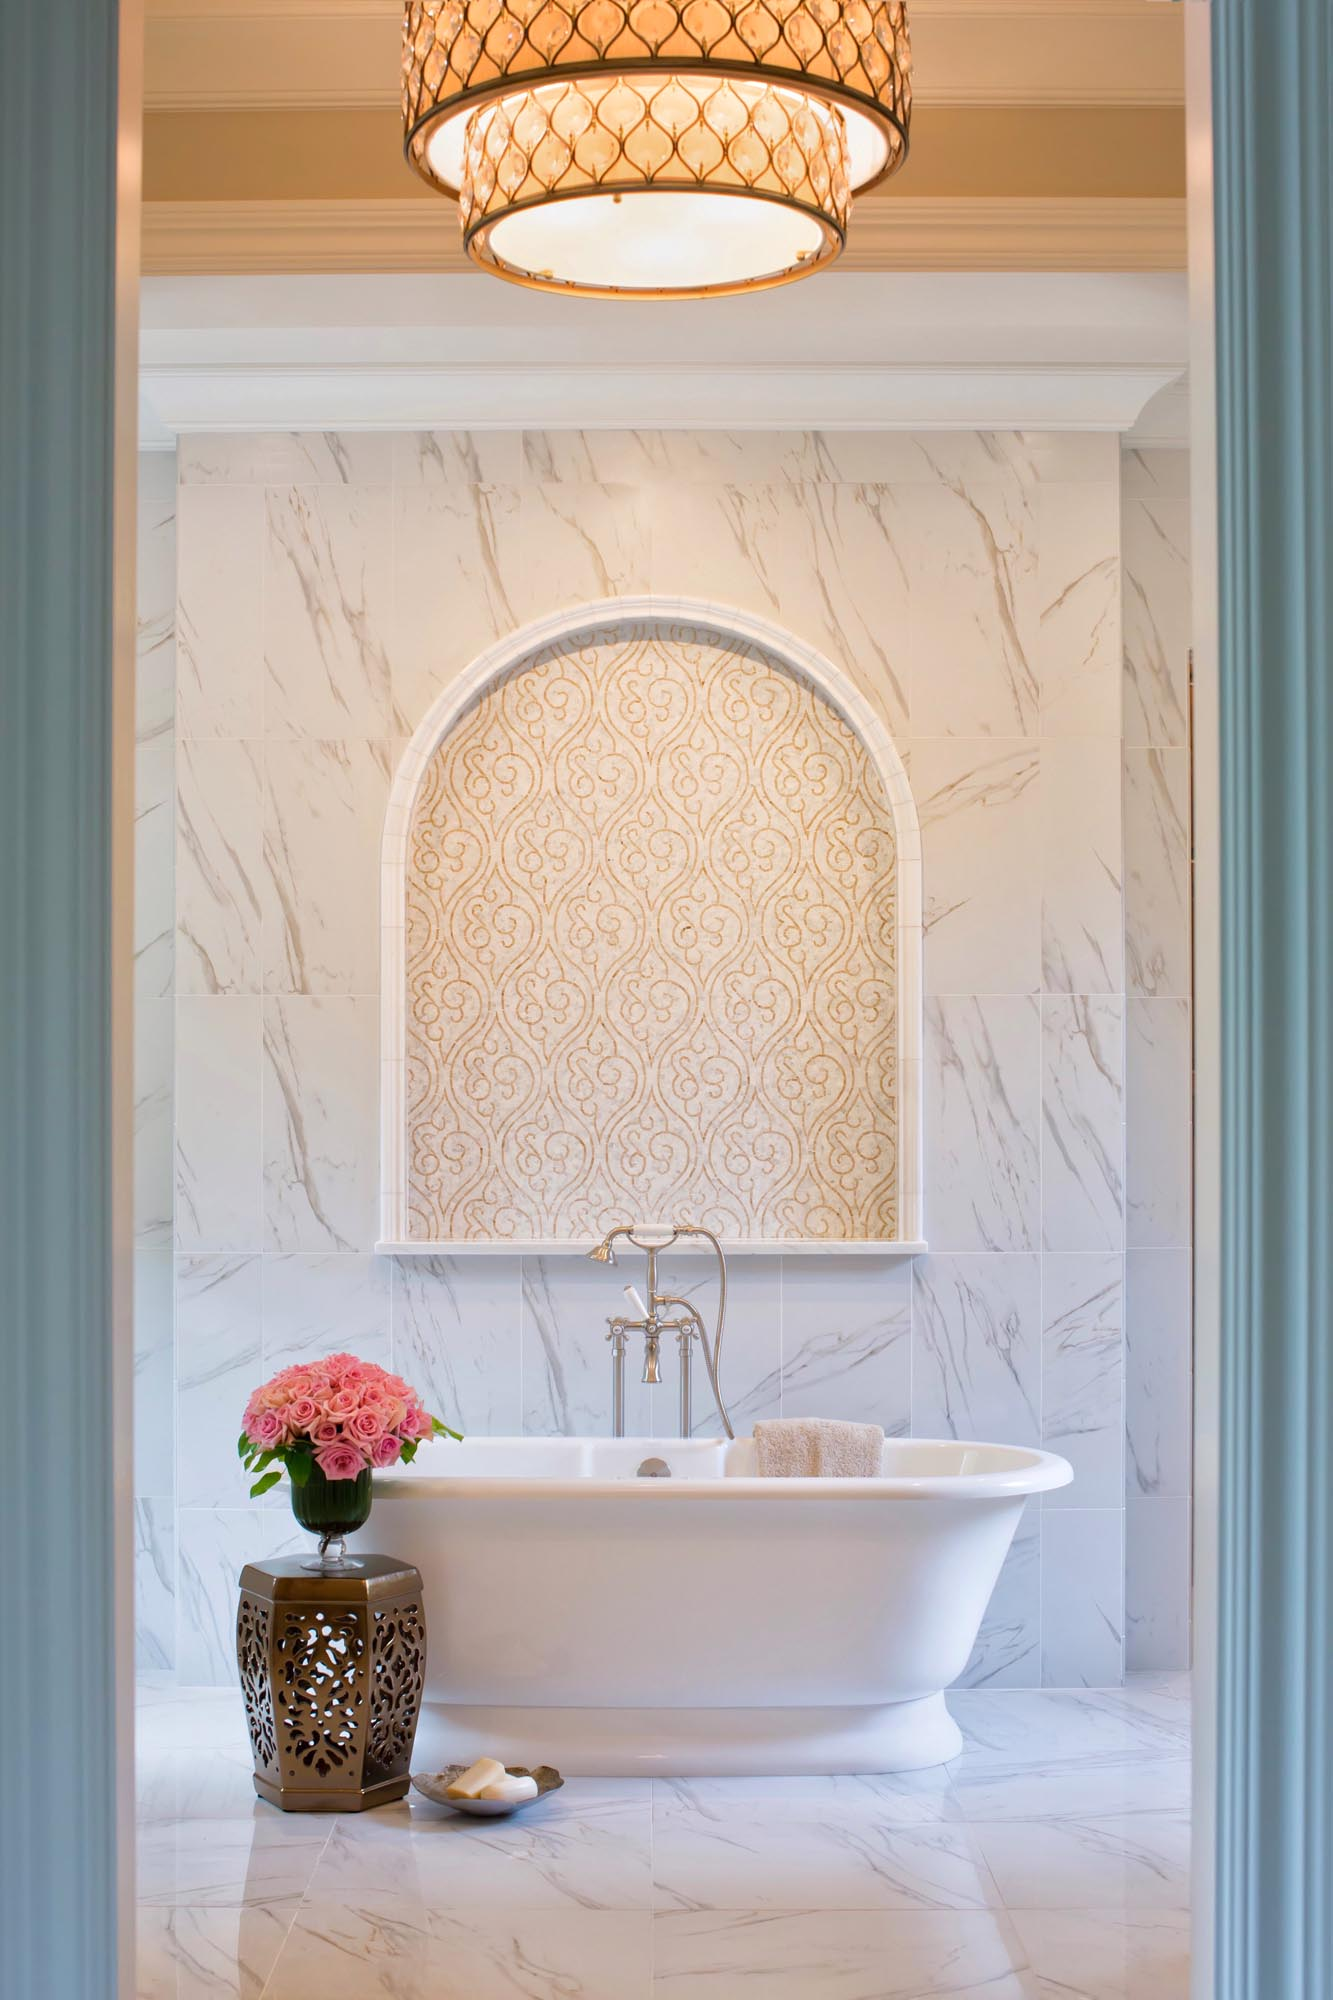 Luxury bath with tiled wall and freestanding tub marble design